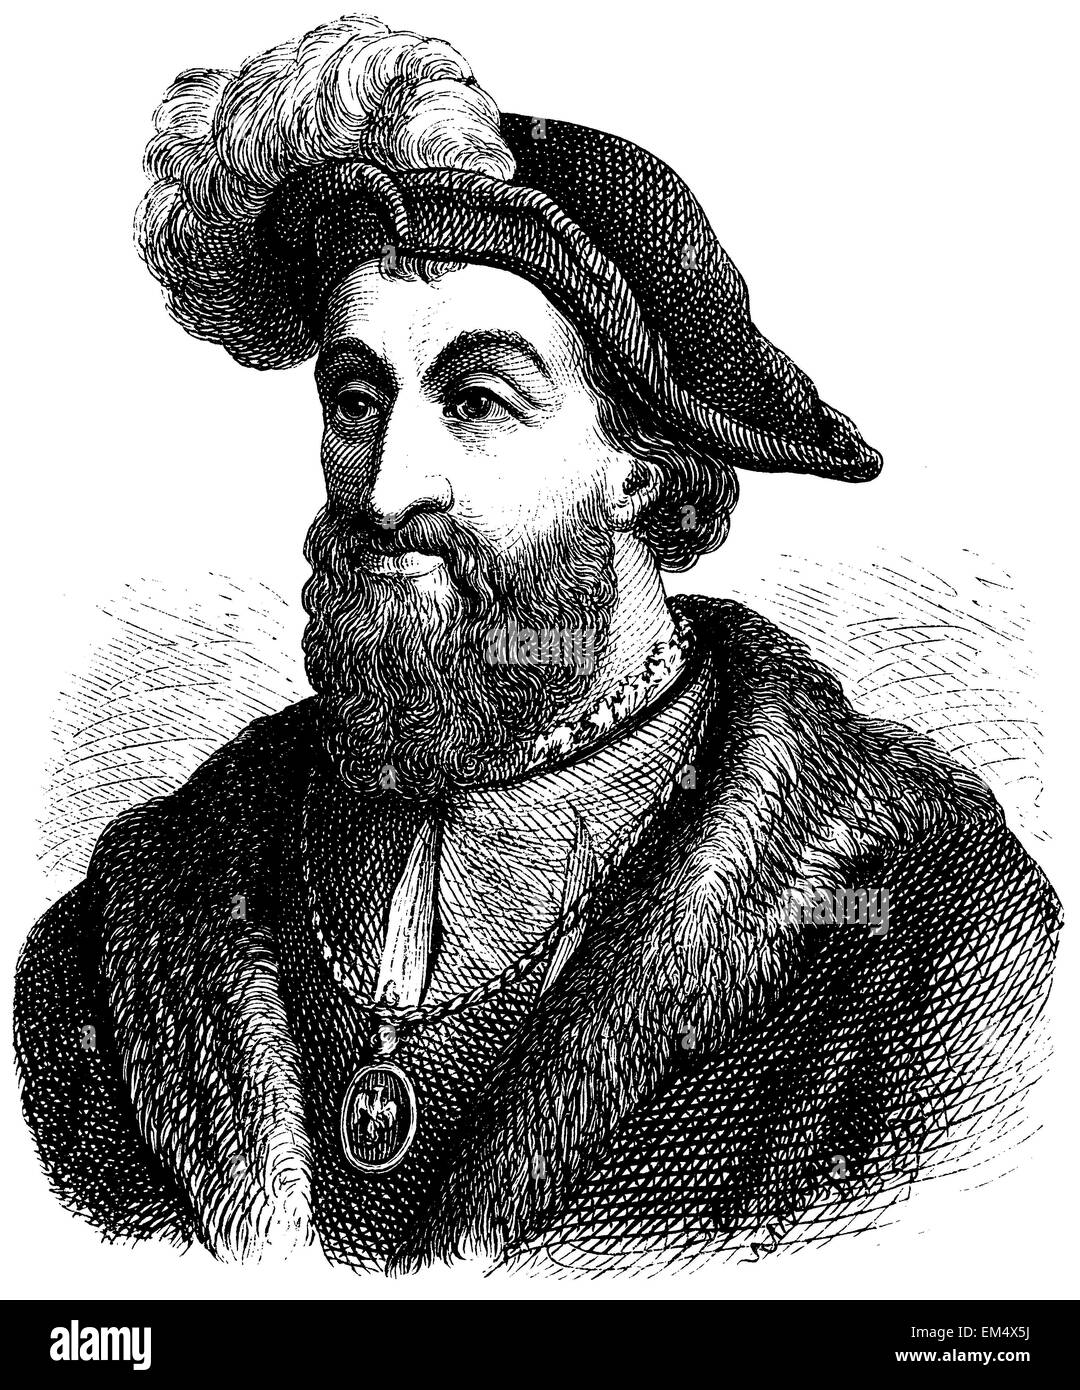 Francis I, King of France (b. September 12, 1494, died March 31, 1547) Stock Photo